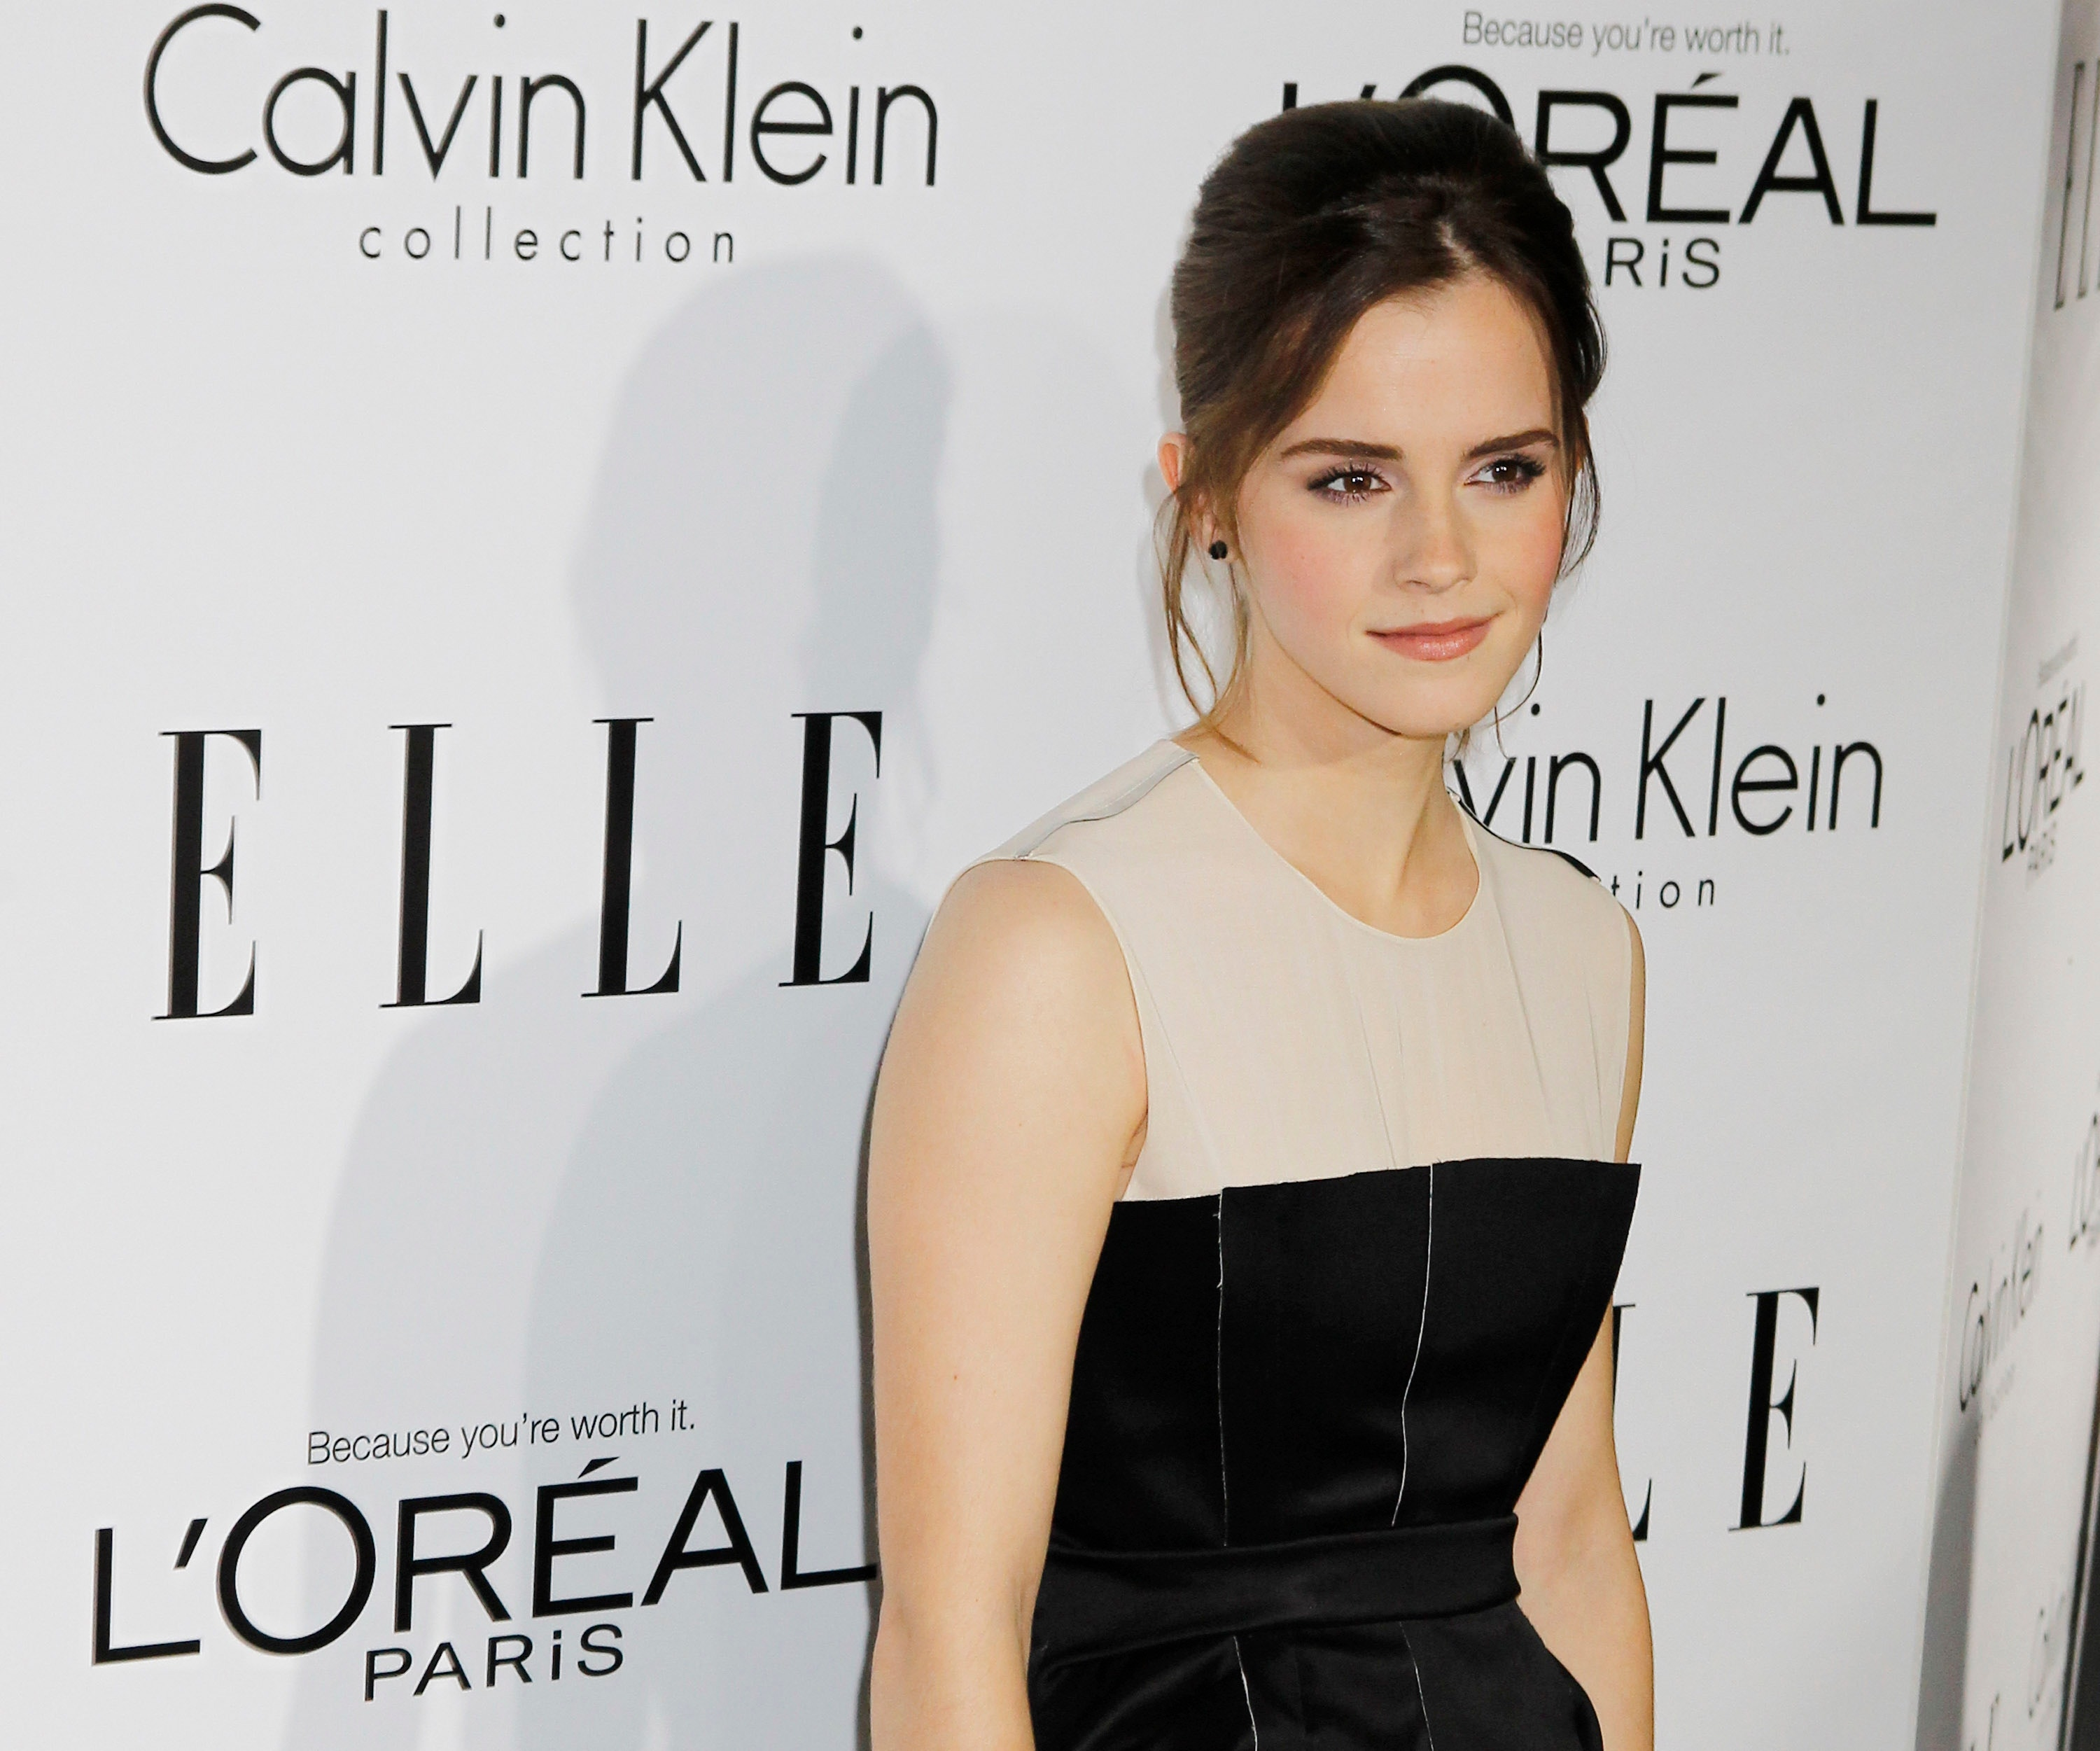 Related image with Hot Emma Watson Body Private Images Thecelebritypix